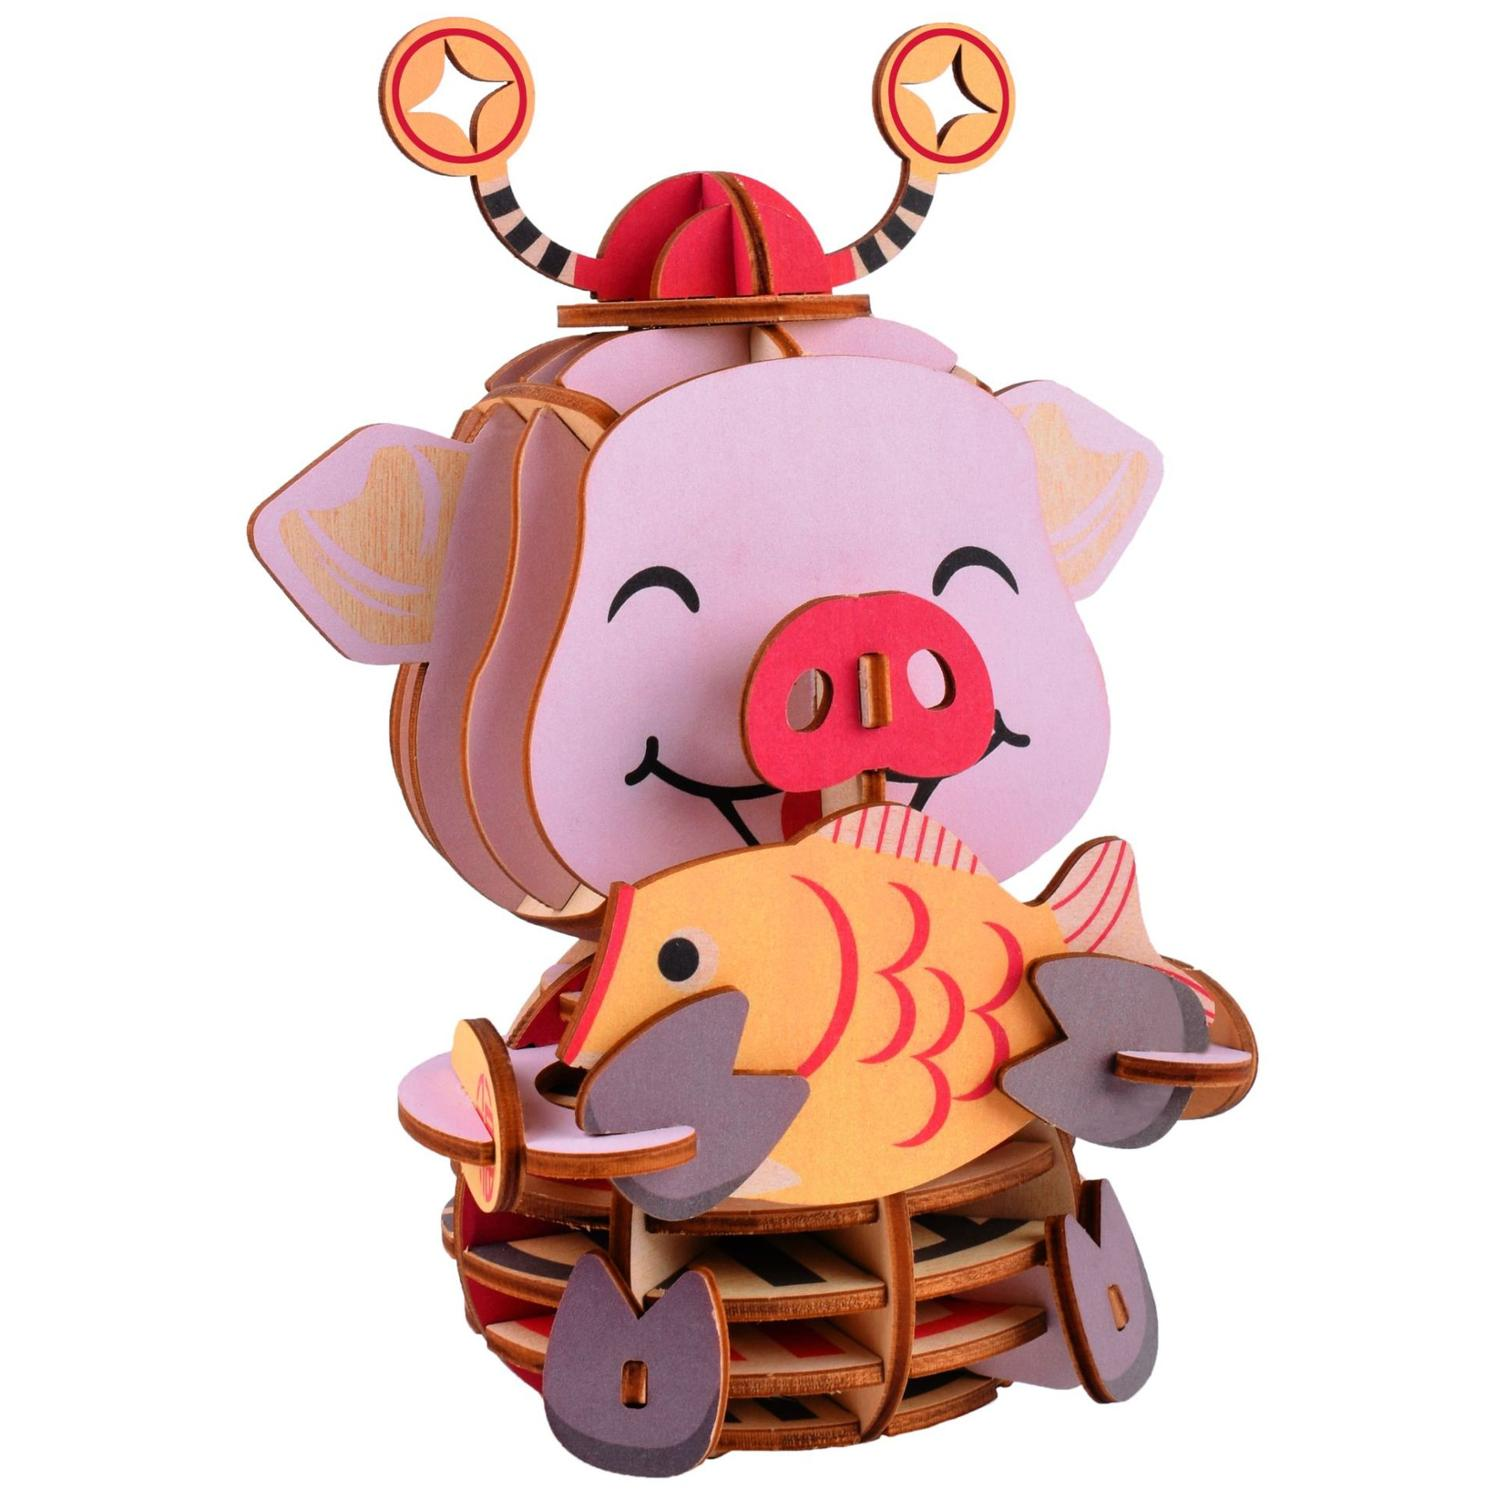 Lucky Pig DIY 3D Wooden Puzzle Woodcraft Assembly Kit Cutting Wood Toys For Christmas Gift 3131